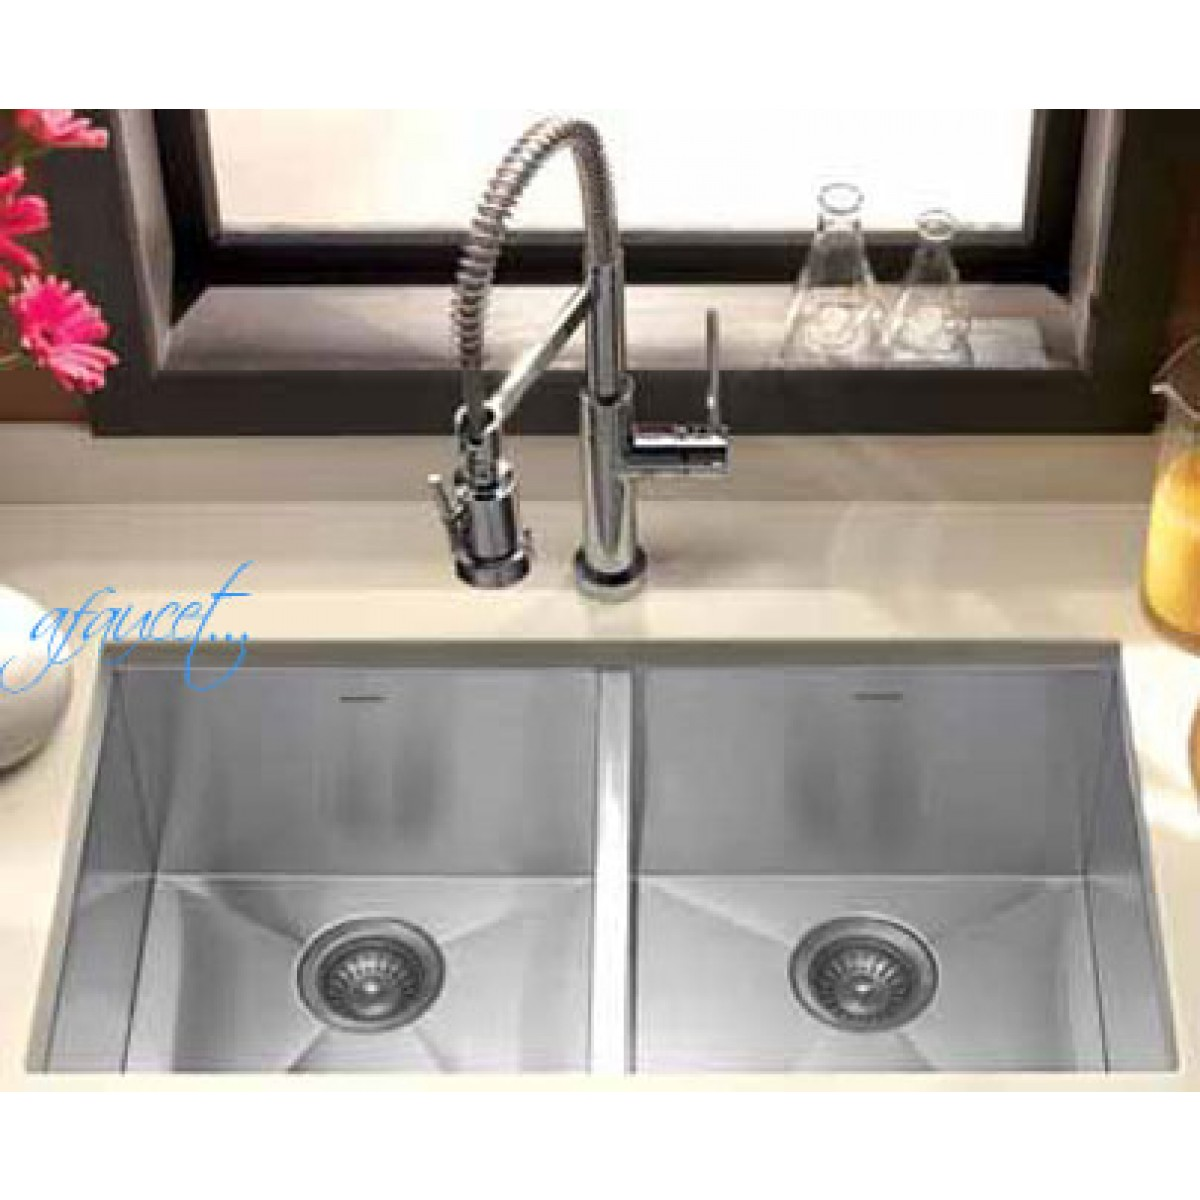 Stainless Steel Double Sink 29 Inch Stainless Steel Undermount 50 50 Double Bowl